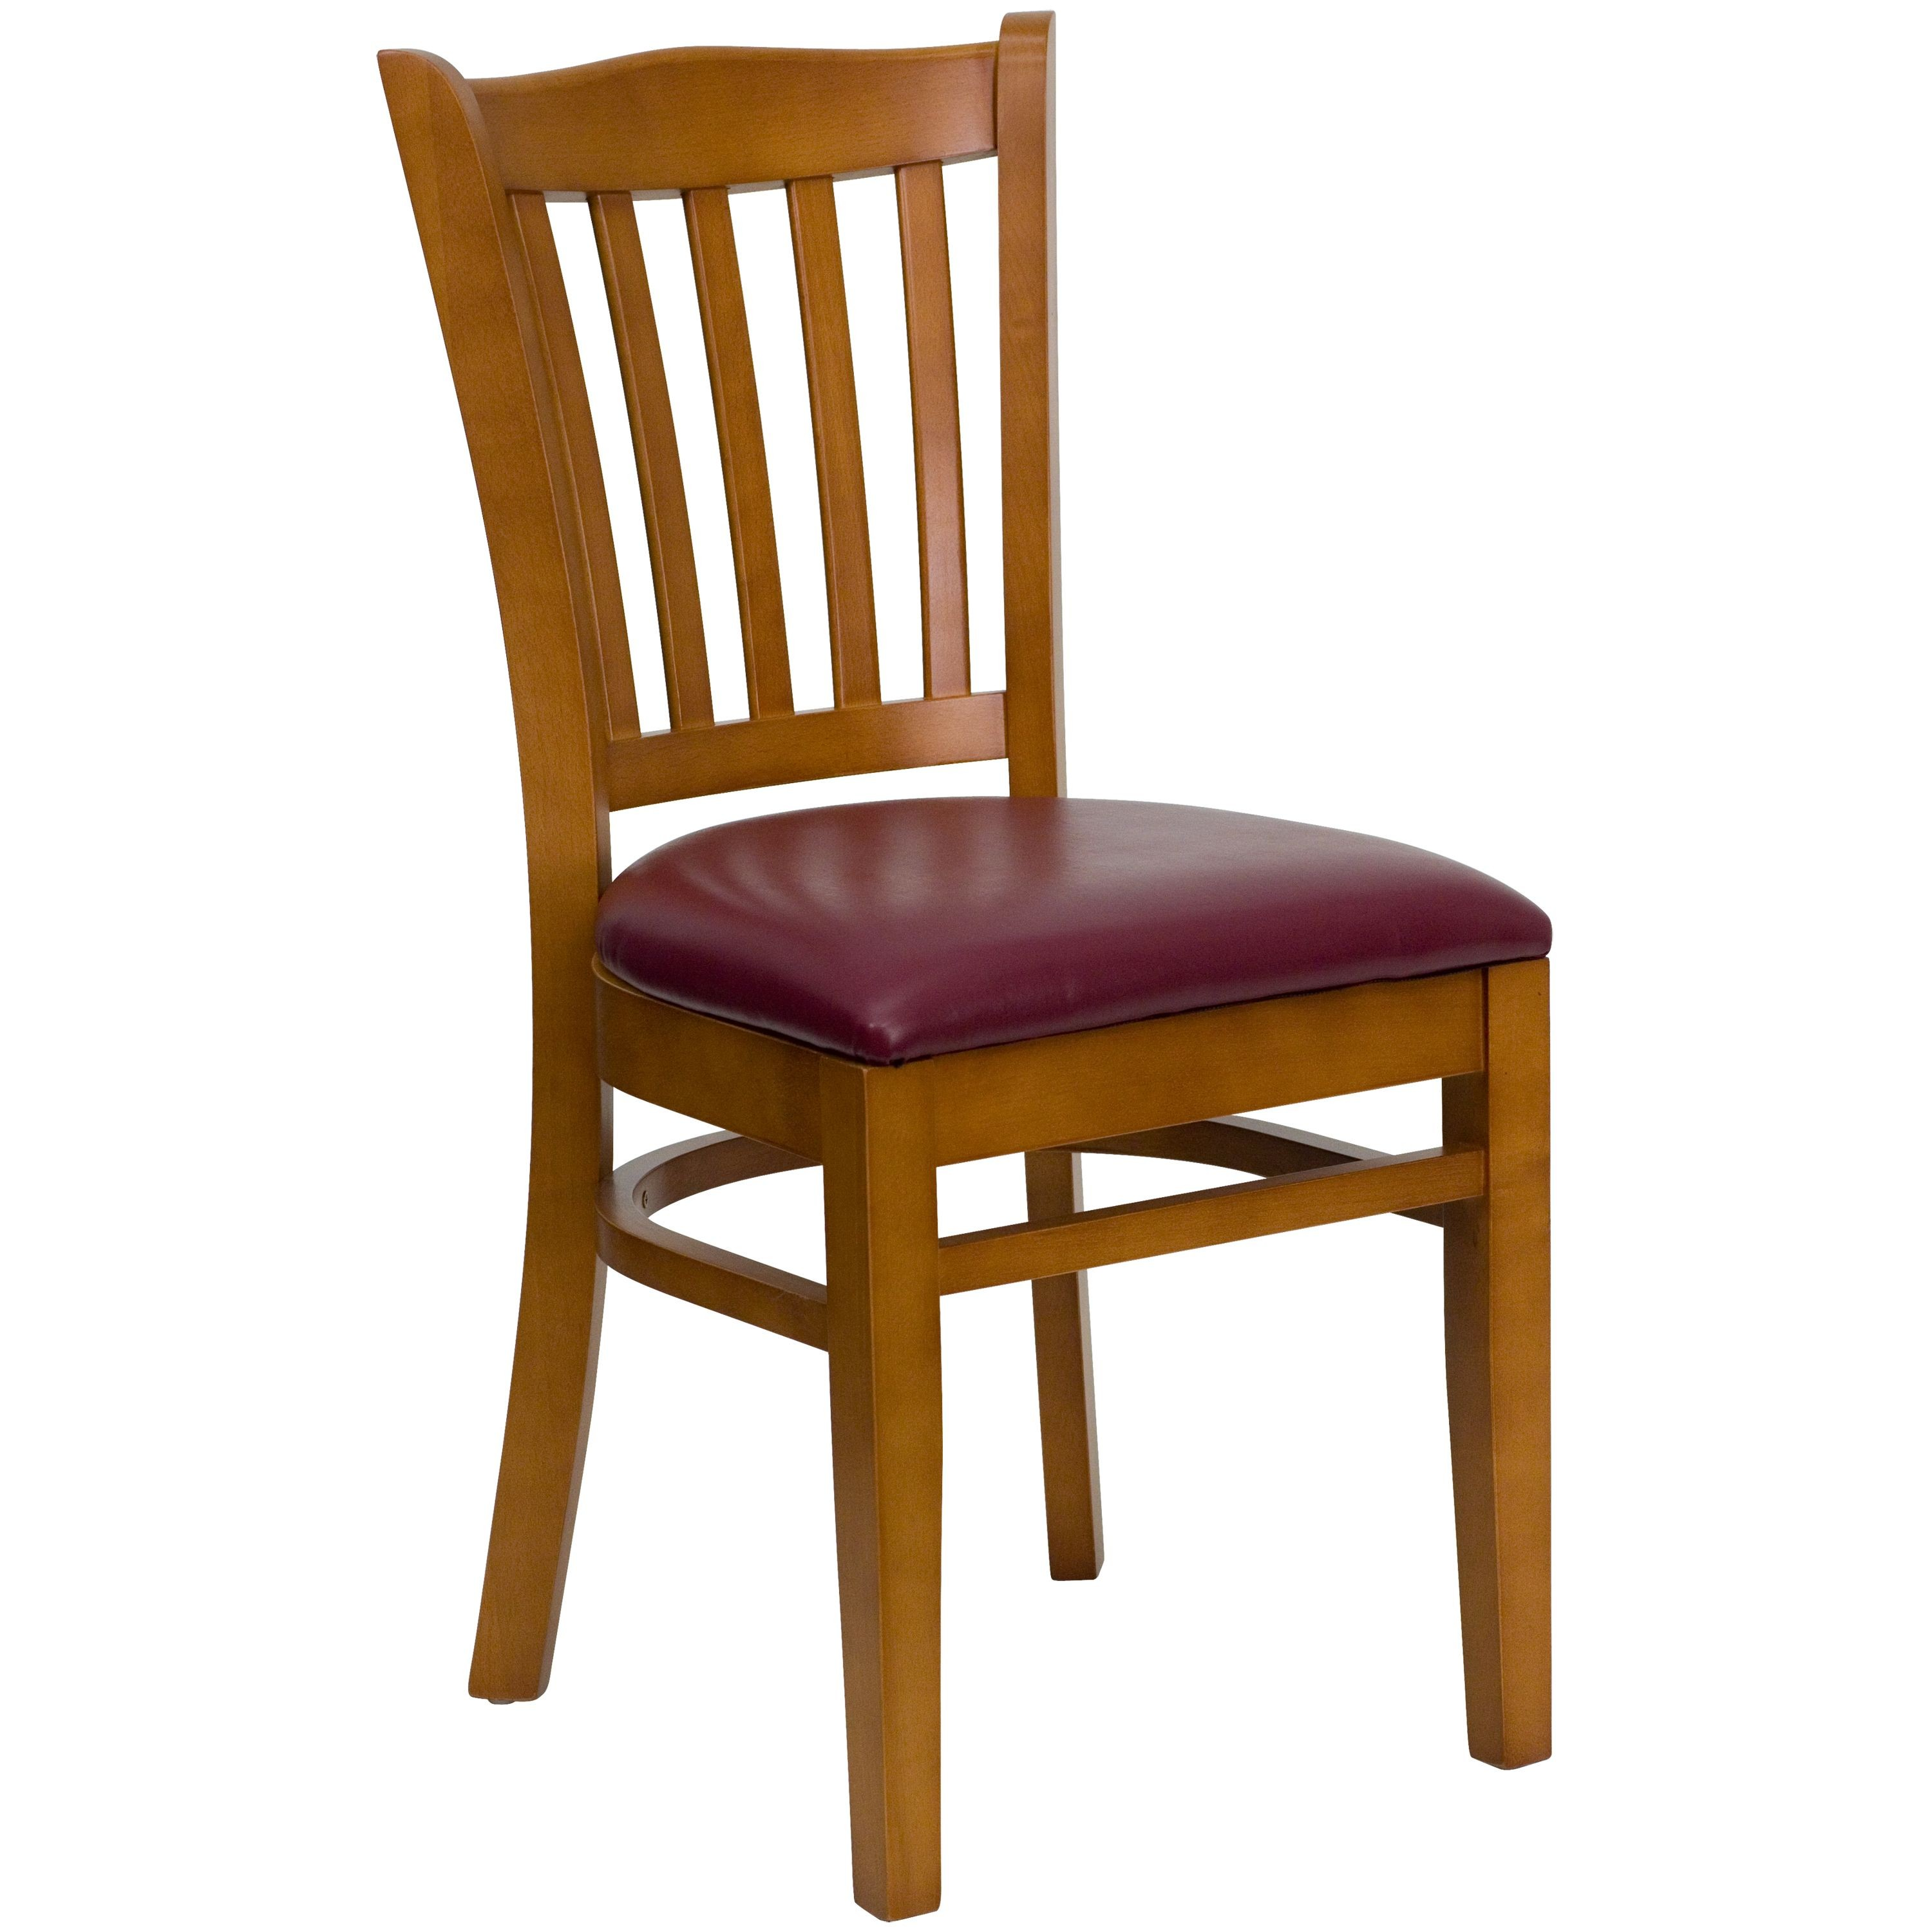 Vertical Slat Back Cherry Wood Chair with Burgundy Vinyl Seat